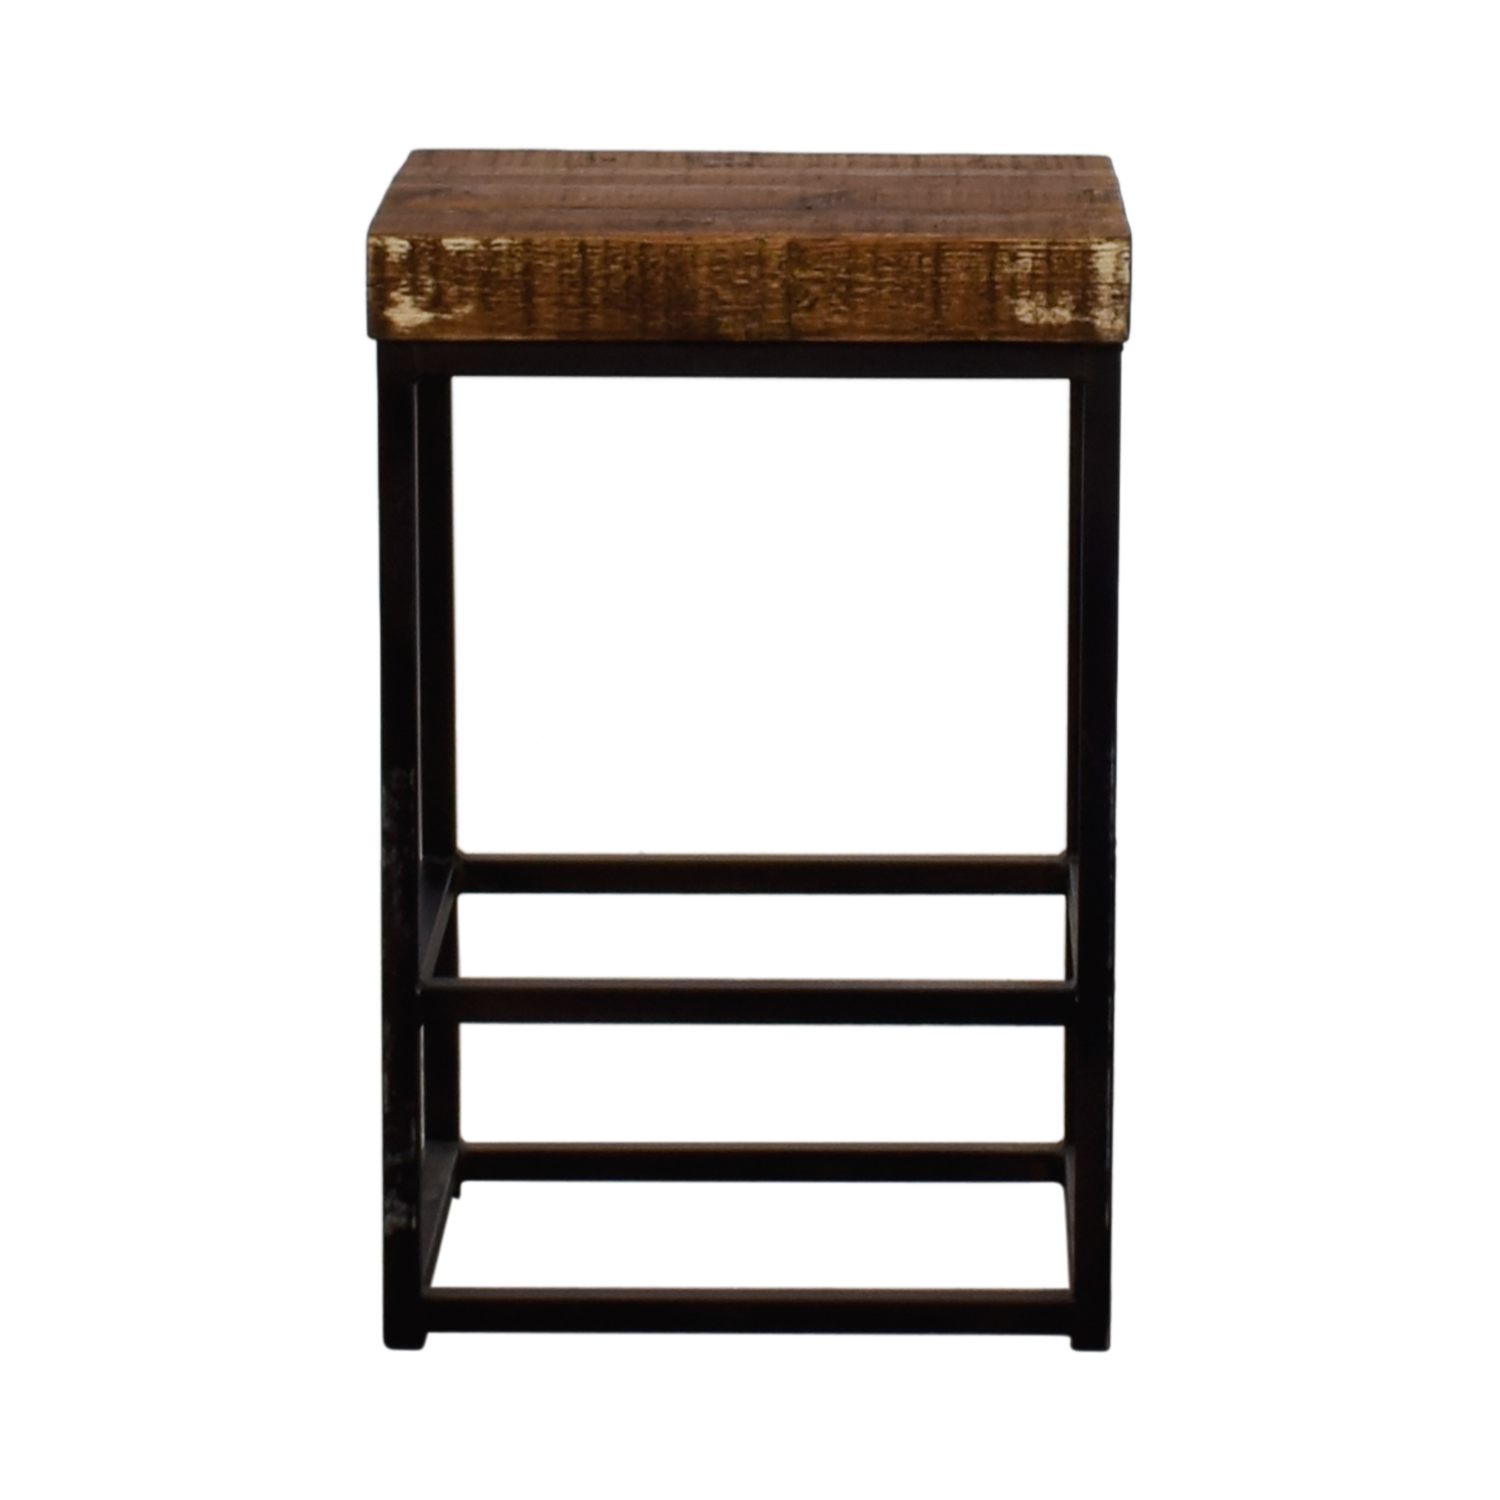 44 Off Homegoods Home Goods Wood And Metal Night Stand Tables